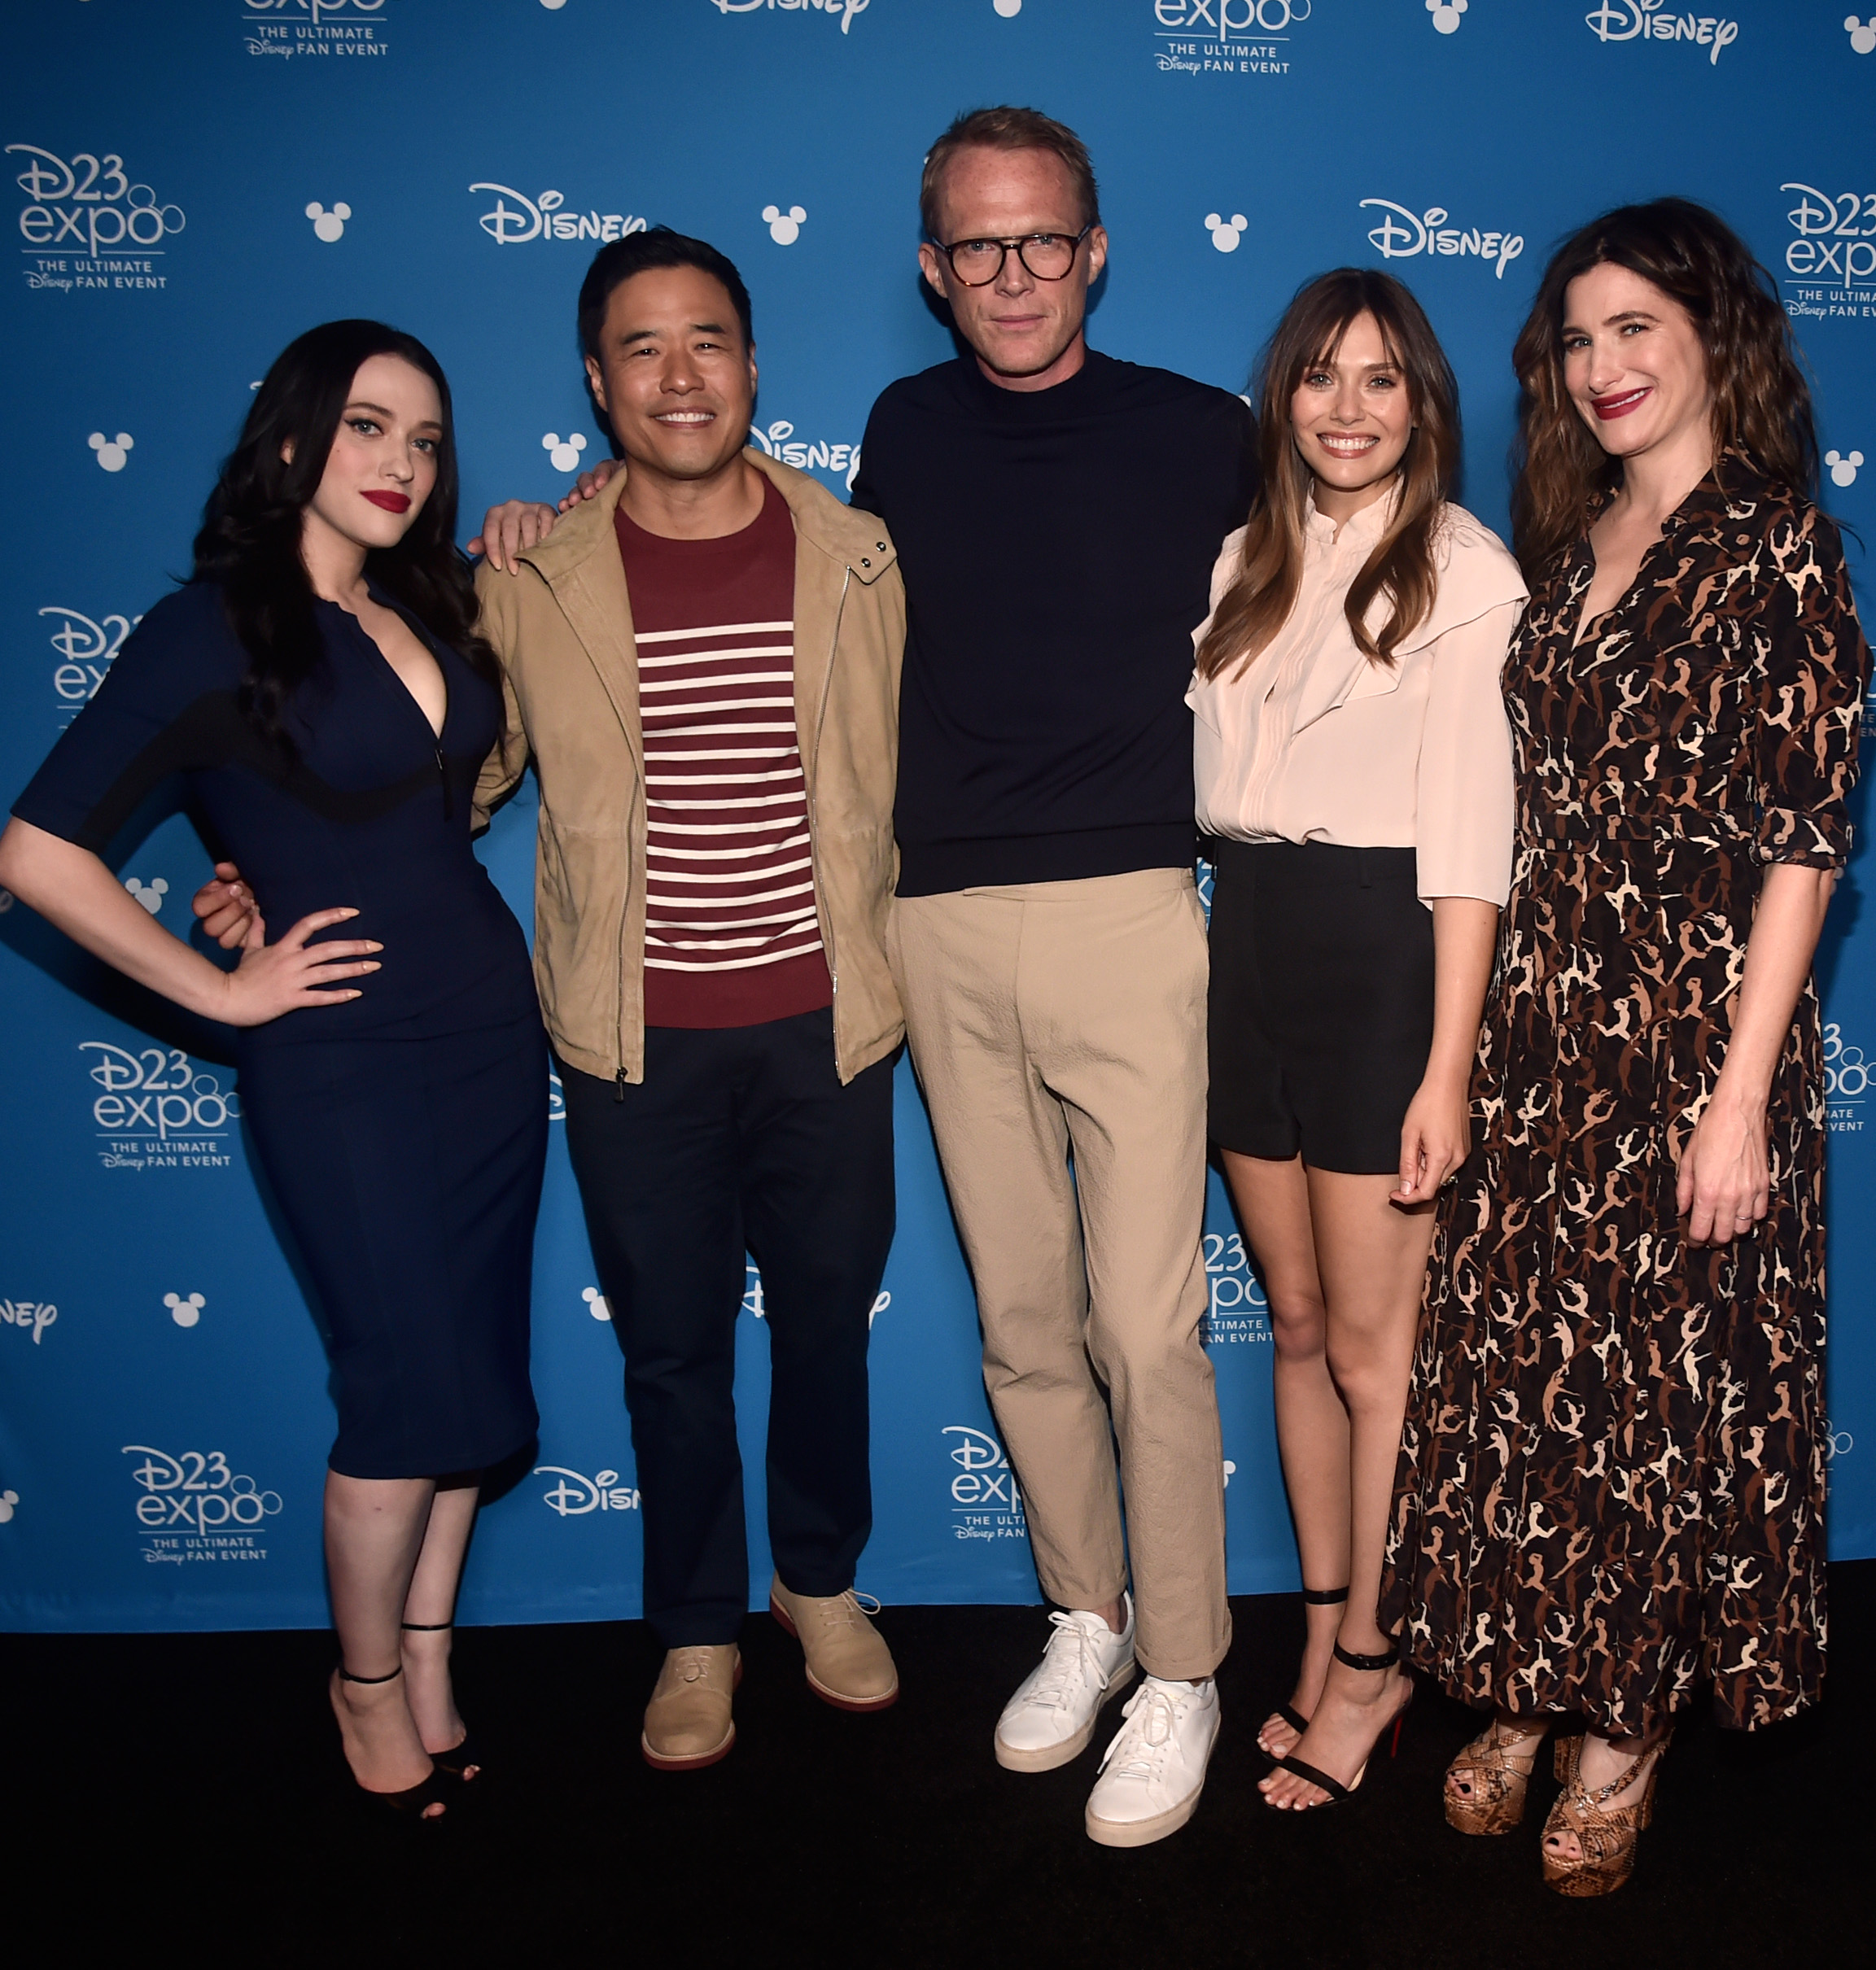 ANAHEIM, CALIFORNIA - AUGUST 23: (L-R) Kat Dennings, Randall Park, Paul Bettany, Elizabeth Olsen, and Kathryn Hahn of 'WandaVision' took part today in the Disney+ Showcase at Disney's D23 EXPO 2019 in Anaheim, Calif. 'WandaVision' will stream exclusively on Disney+, which launches November 12. (Photo by Alberto E. Rodriguez/Getty Images for Disney)